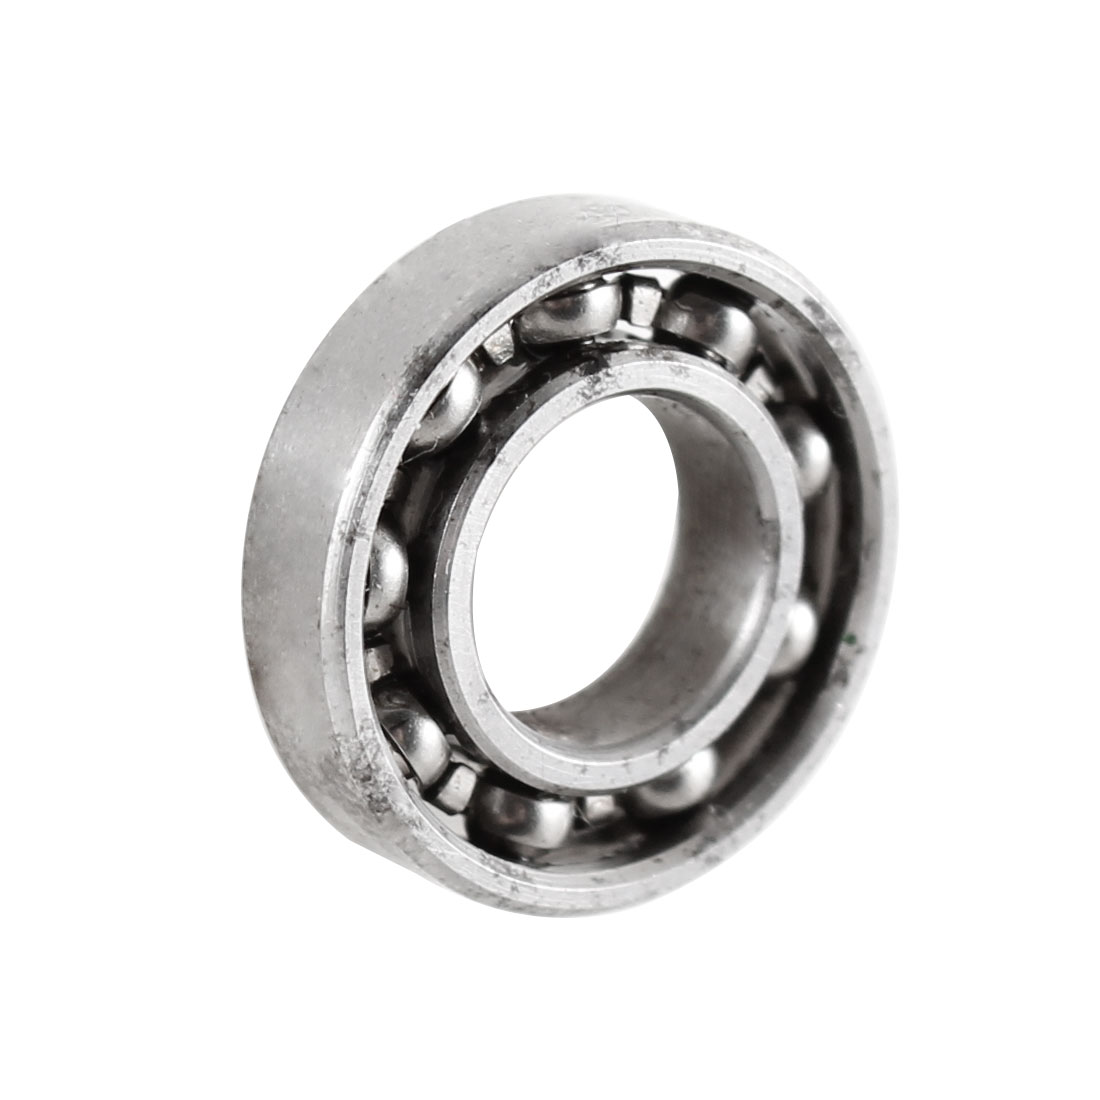 6872RS Dual Metal Shields Deep Groove Ball Bearing 7mm x 14mm x 3.5mm